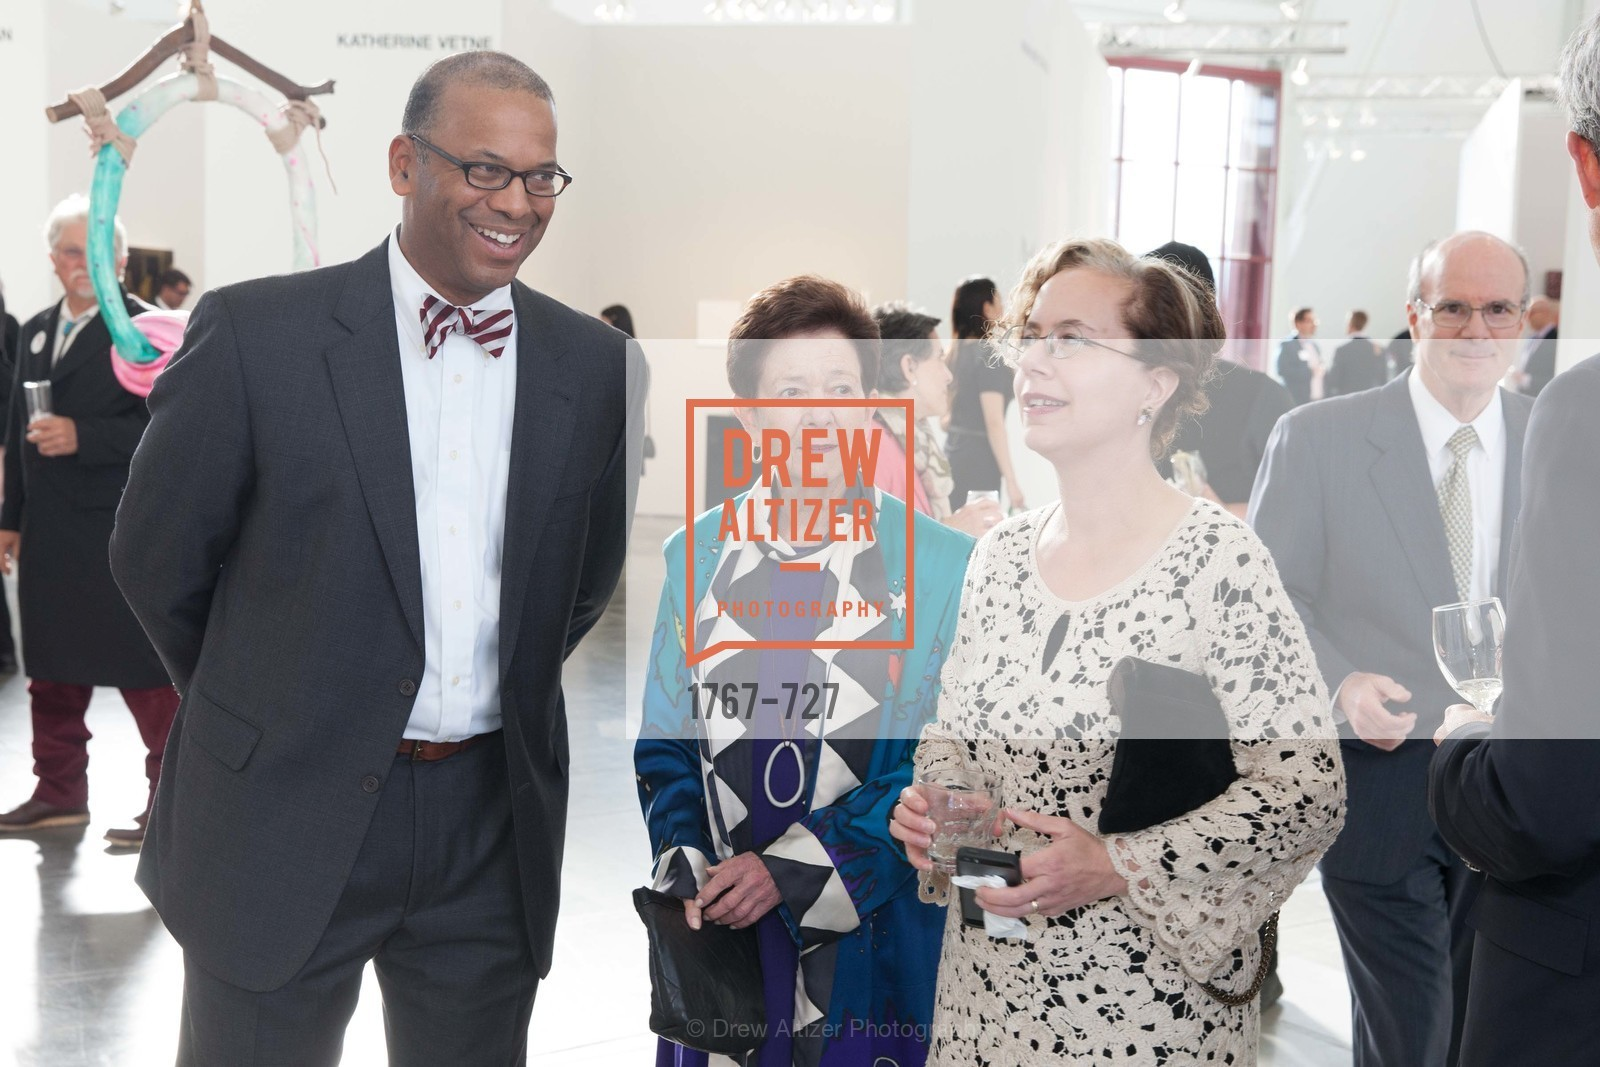 Scott Sillers, Cissie Swig, Rachel Schreiber, SAN FRANCISCO ART INSTITUTE Gala Honoring Art Visionary and Advocate ROSELYNE CHROMAN SWIG, US, May 13th, 2015,Drew Altizer, Drew Altizer Photography, full-service agency, private events, San Francisco photographer, photographer california